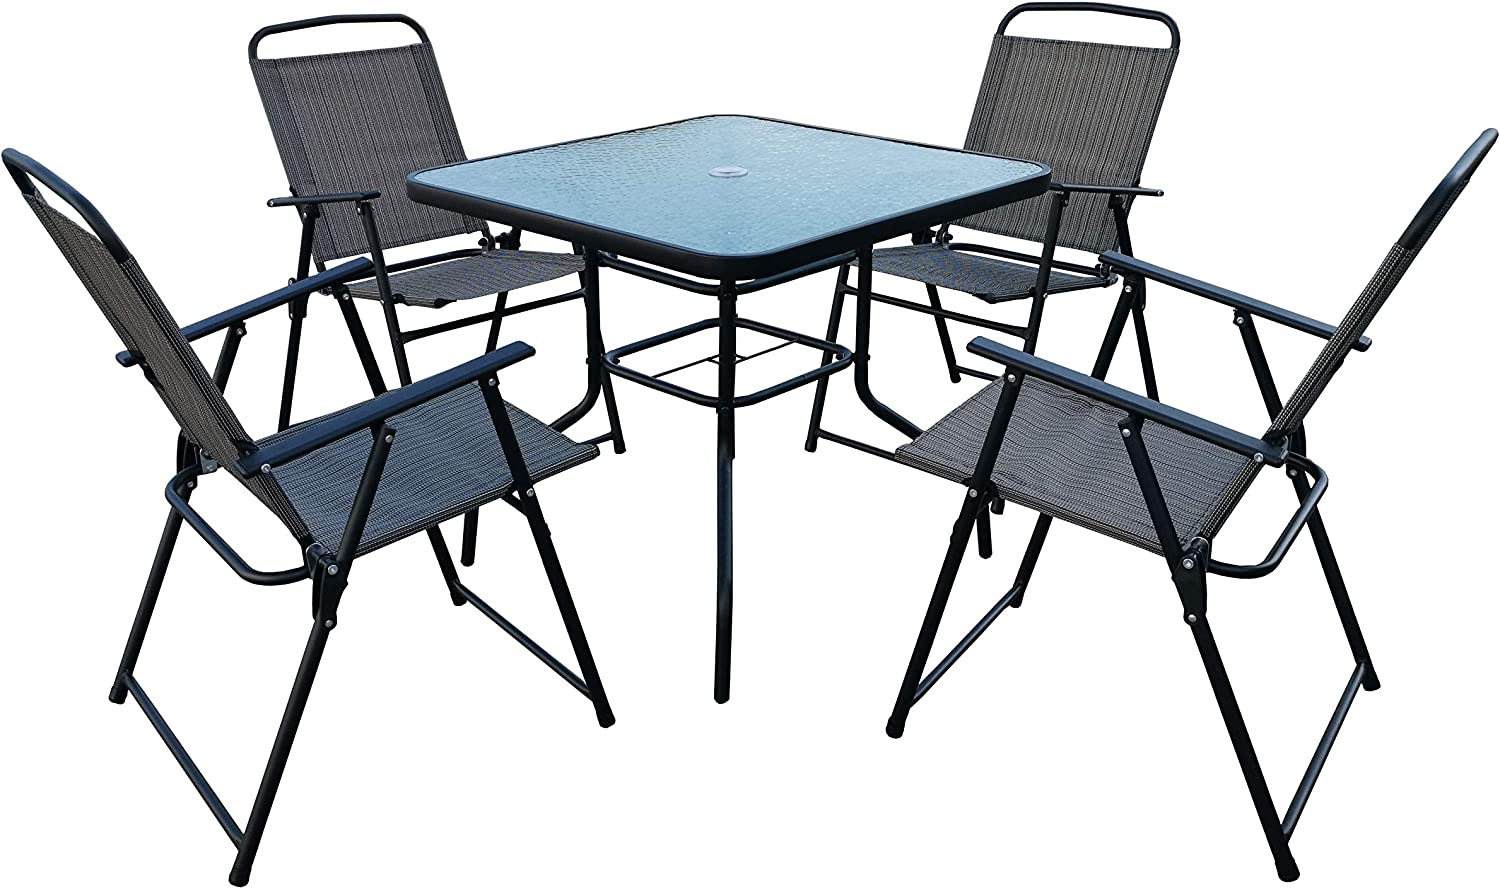 Homewell Outdoor Dining Furniture Set for Patio, Back Yard, Deck, Bistro (Grey) (Table + 4 Chairs)